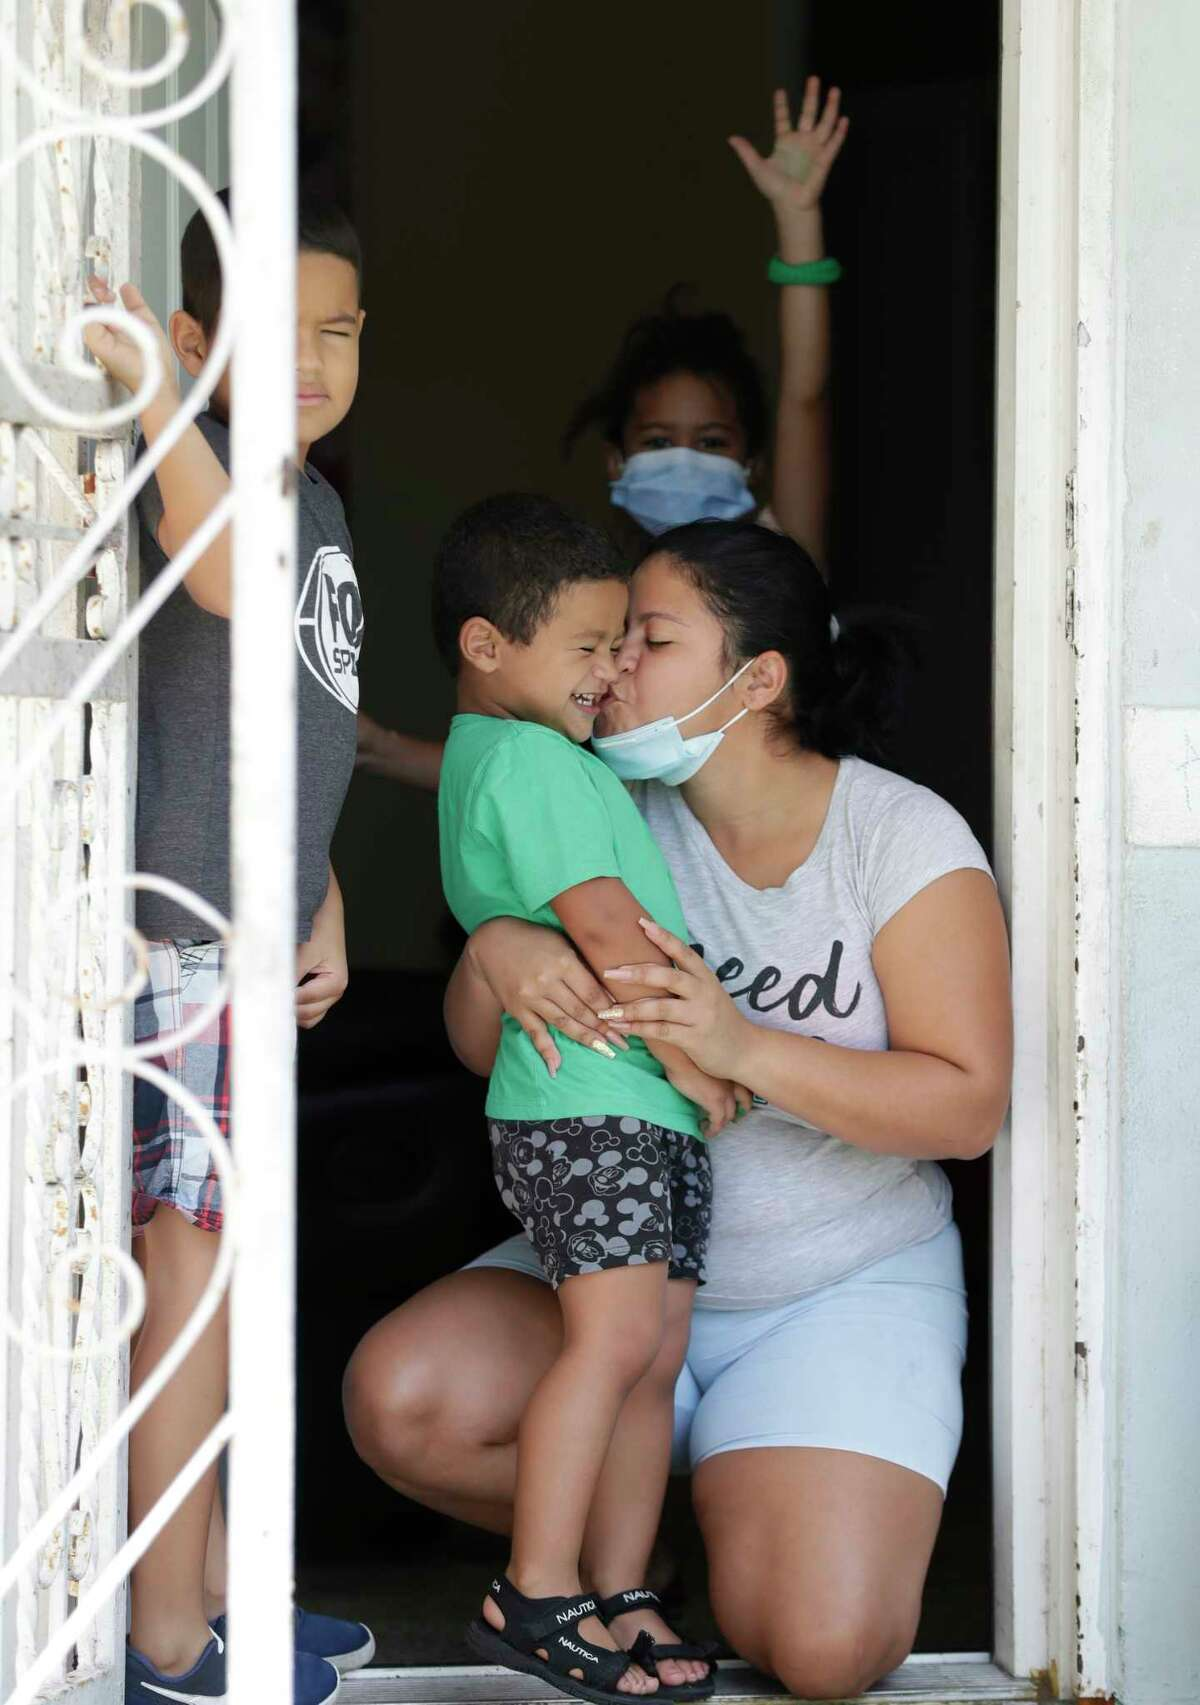 Greyla Javier, right, kisses her son Erick Benavides, 3, who is visually impaired, as her other son Abdiel, left, 7, who is also visually impaired, and her daughter Solimar, rear, 5, look on as they receive food, Thursday, Aug. 6, 2020, at their home in Miami. Miami Lighthouse for the Blind and Visually Impaired provided the meals to needy families with blind or visually impaired children who have been economically affected by the COVID-19 pandemic. Miami Lighthouse started the Family Security Fund Campaign and has been spending an average of $3,500 a week to help numerous local families who are experiencing food insecurities. (AP Photo/Wilfredo Lee)